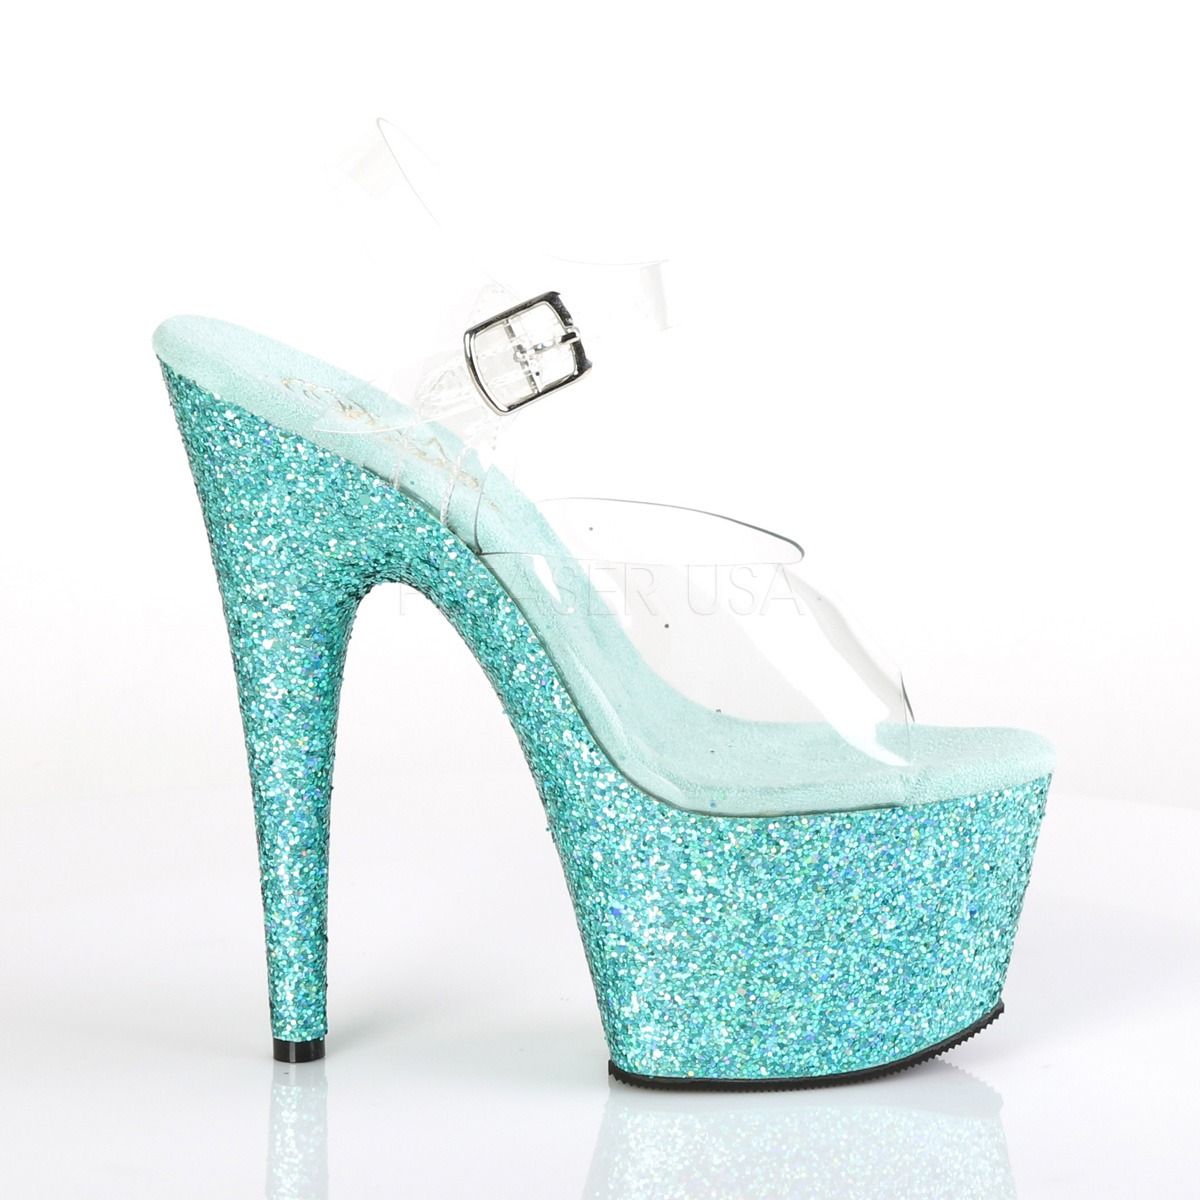 8a06db84d0b5 Turquoise glitter 18 cm Pleaser ADORE-708LG Pole dancing high heels shoes